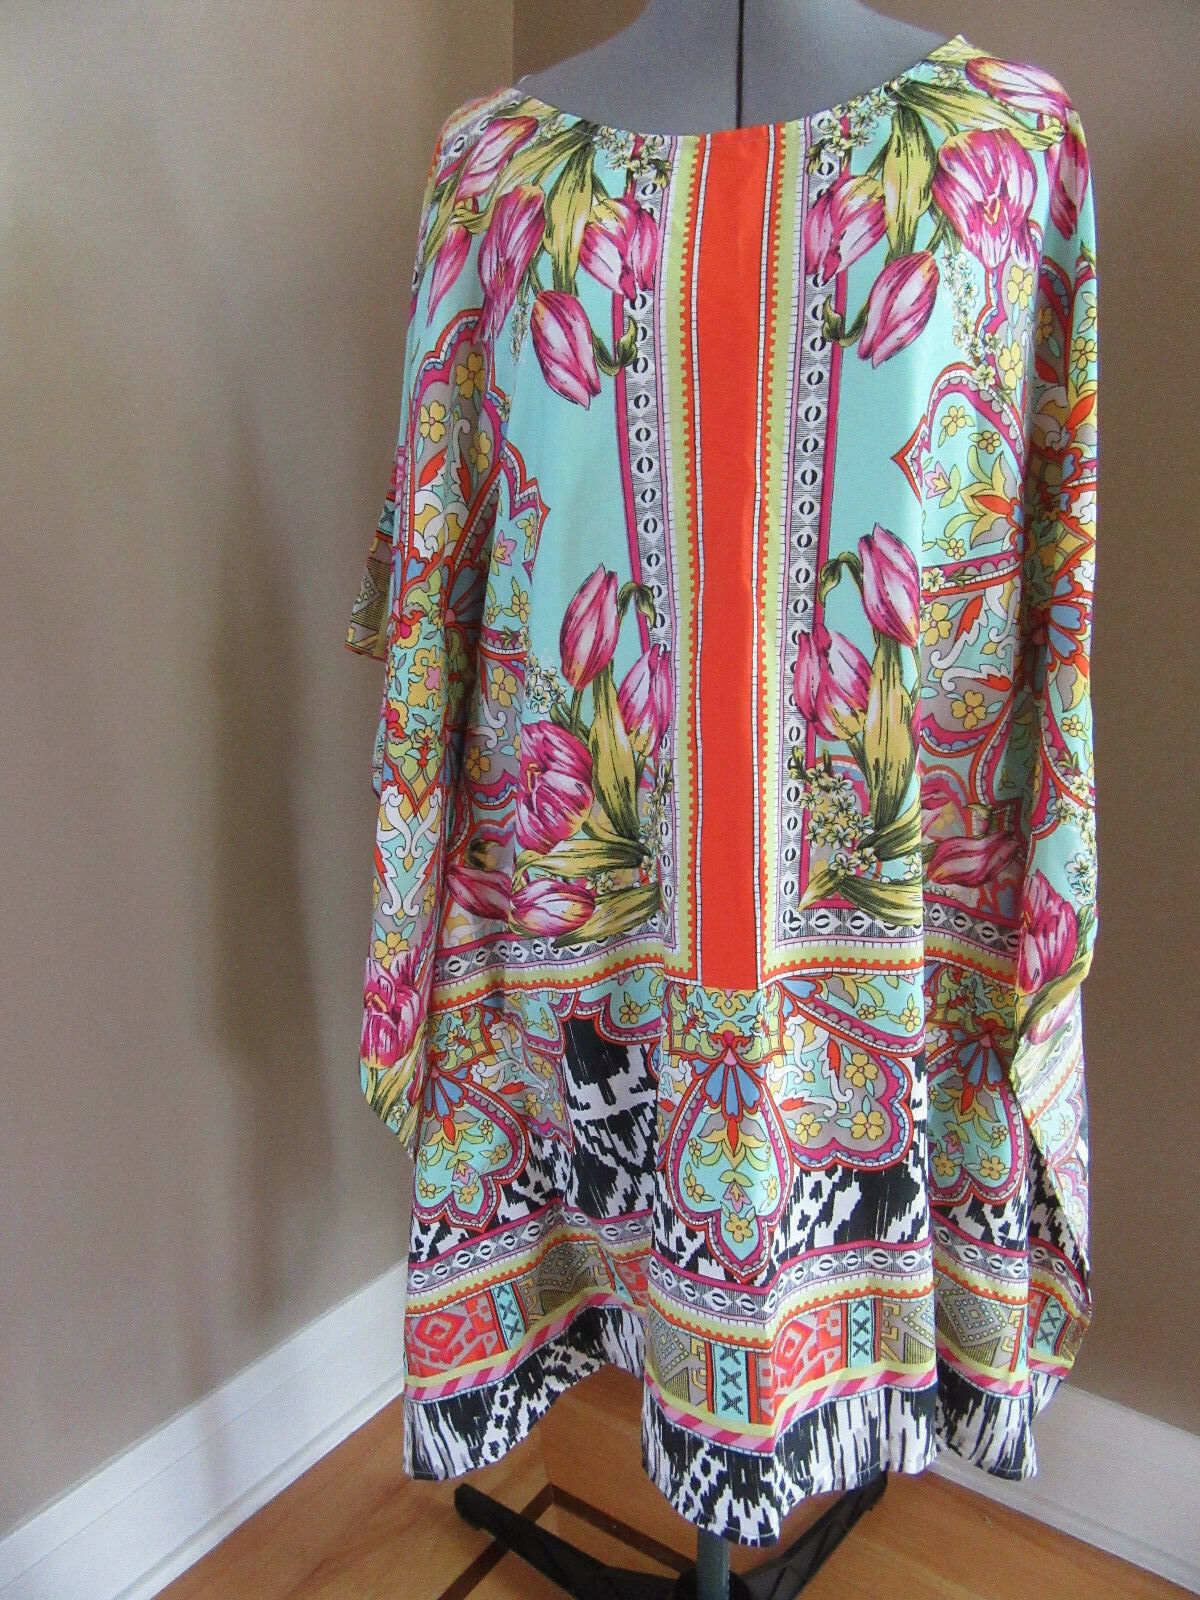 NWT ALBERTO MAKALI Round Neck Tunic Top Beach Cover up Größe Small